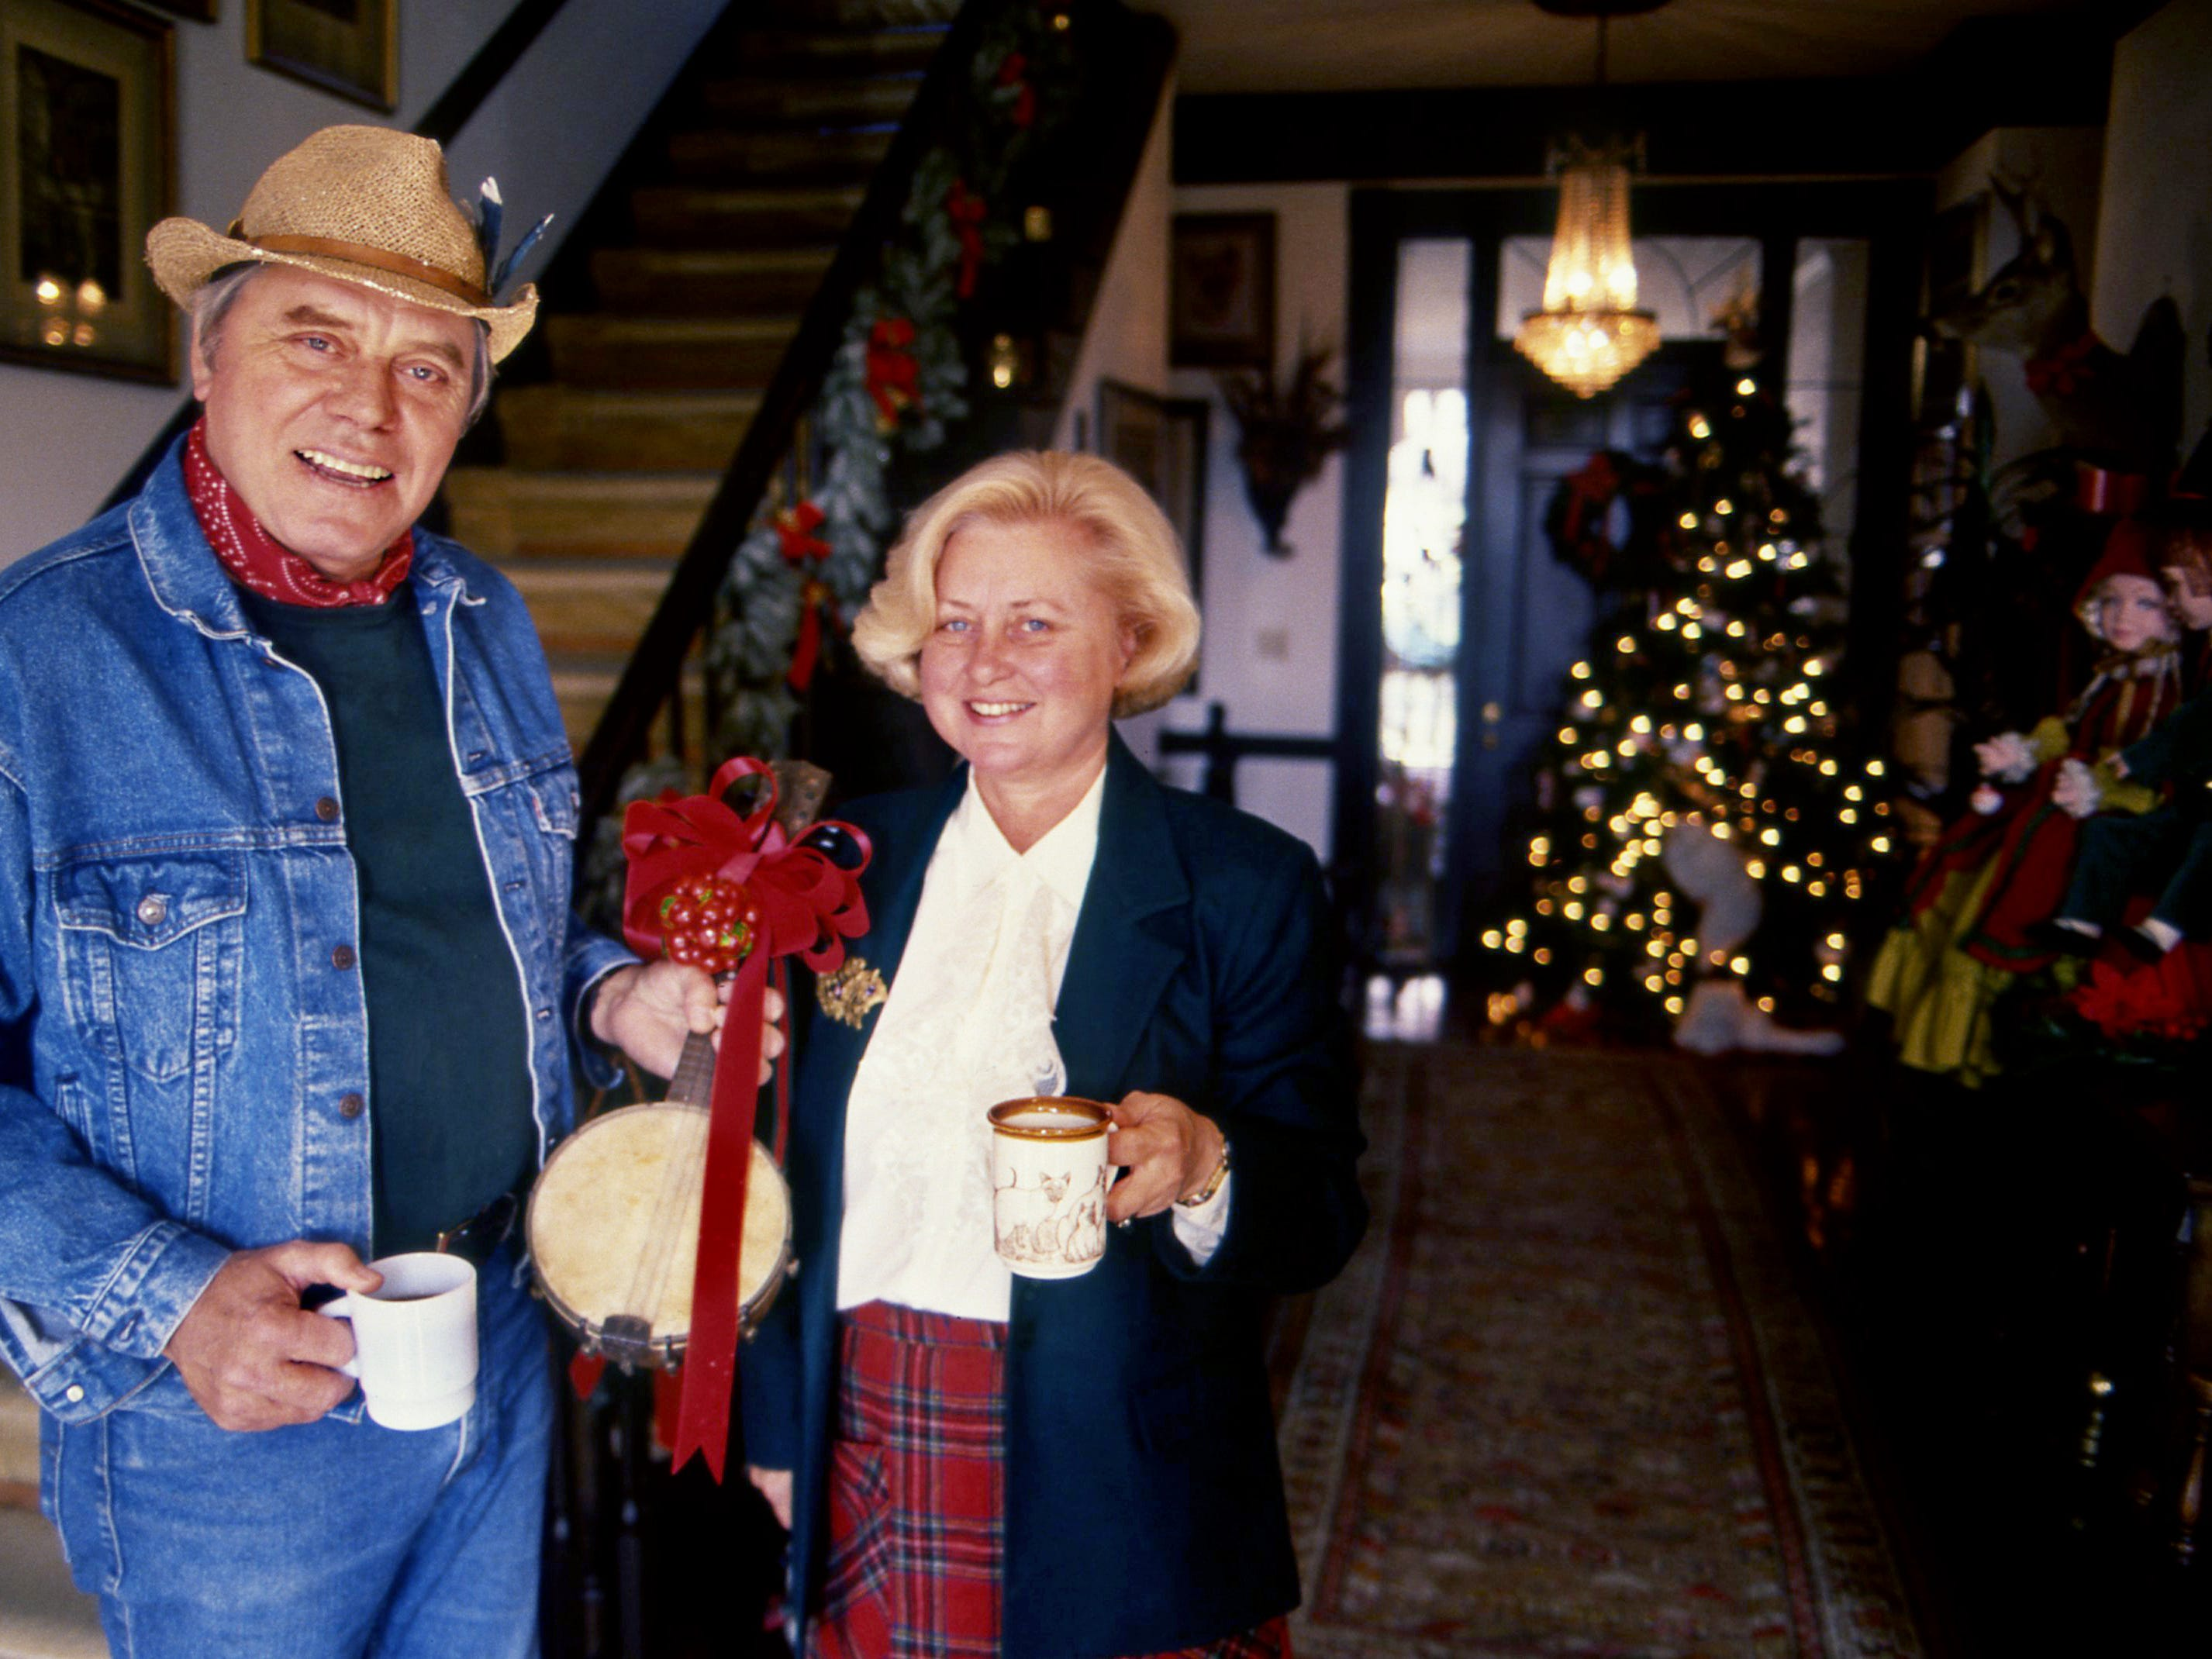 Tom T. Hall and wife Dixie stand ready on Nov. 21, 1988, with a welcoming cup of coffee for guests invited to their upcoming annual Christmas at Fox Hollow to benefit Animaland.